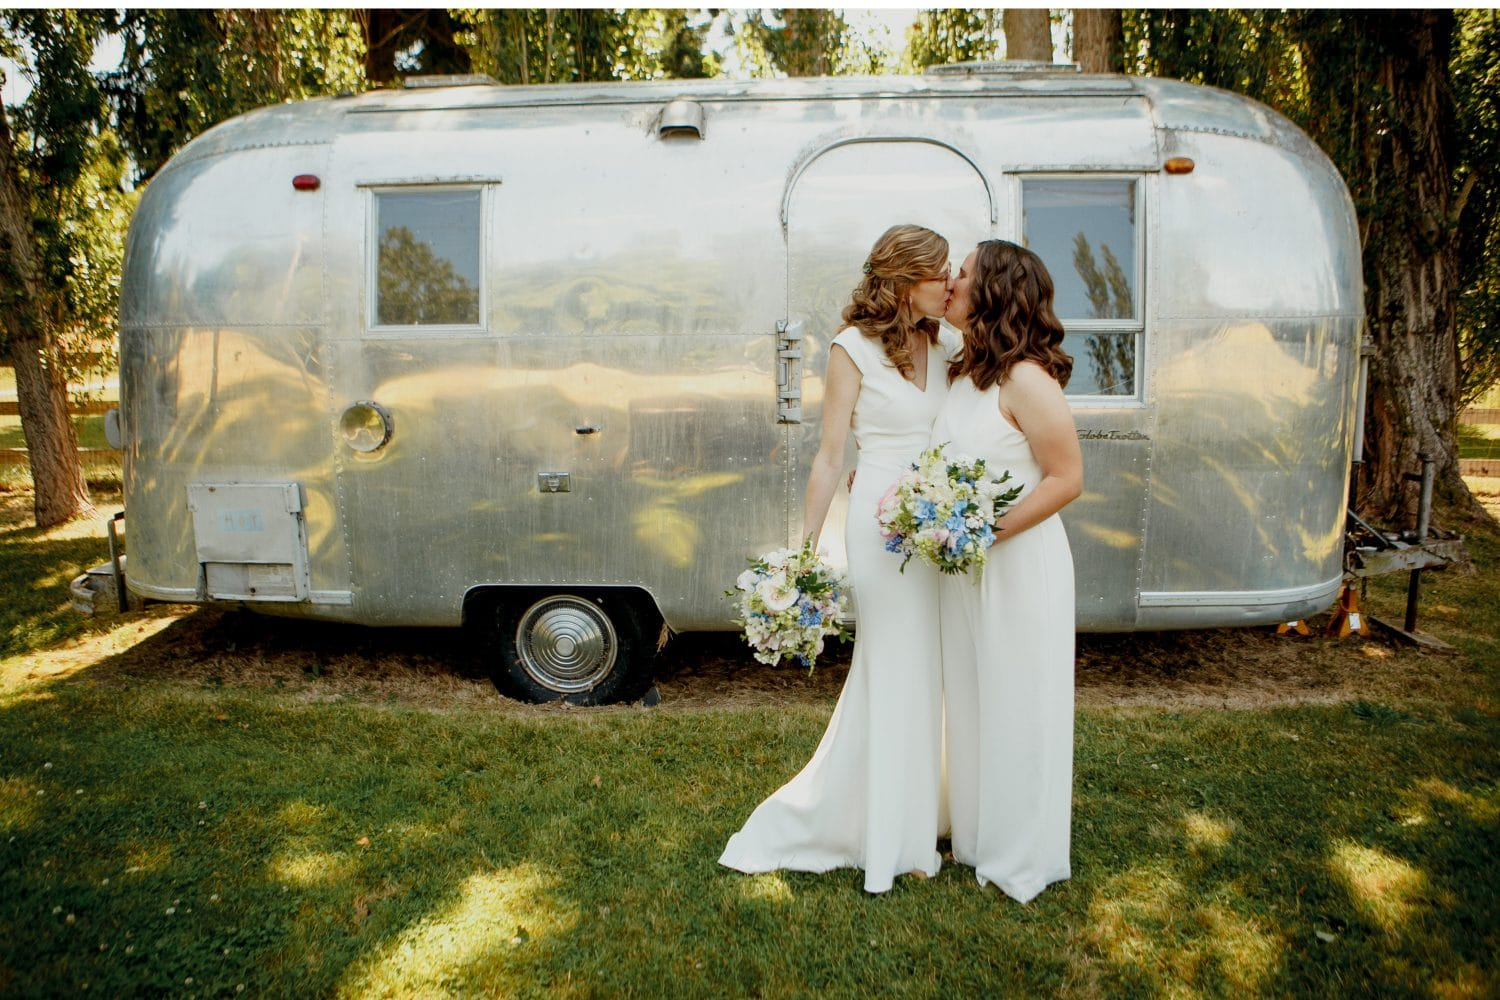 Whidbey island wedding photographer wayfarer farm photo inspiration same sex lesbian wedding airstream trailer